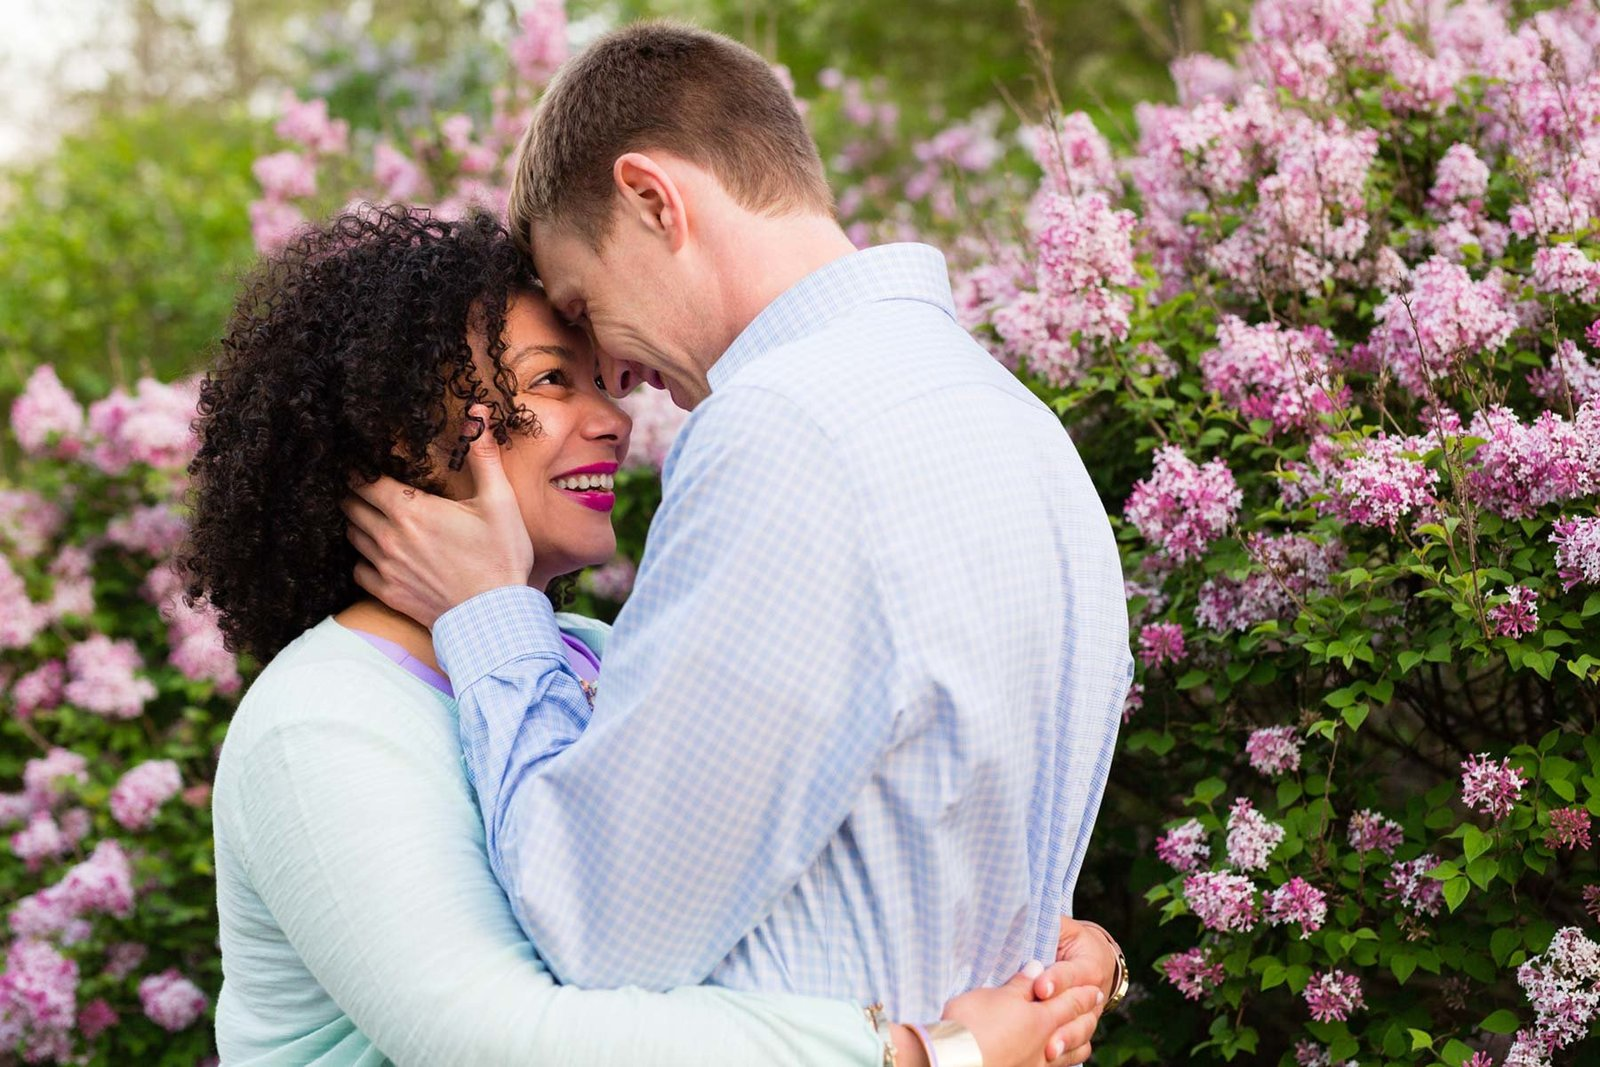 Arnold Arboretum Boston Massachusetts Wedding Photographer Engagement Shoot Flowers Image I am Sarah V Photography